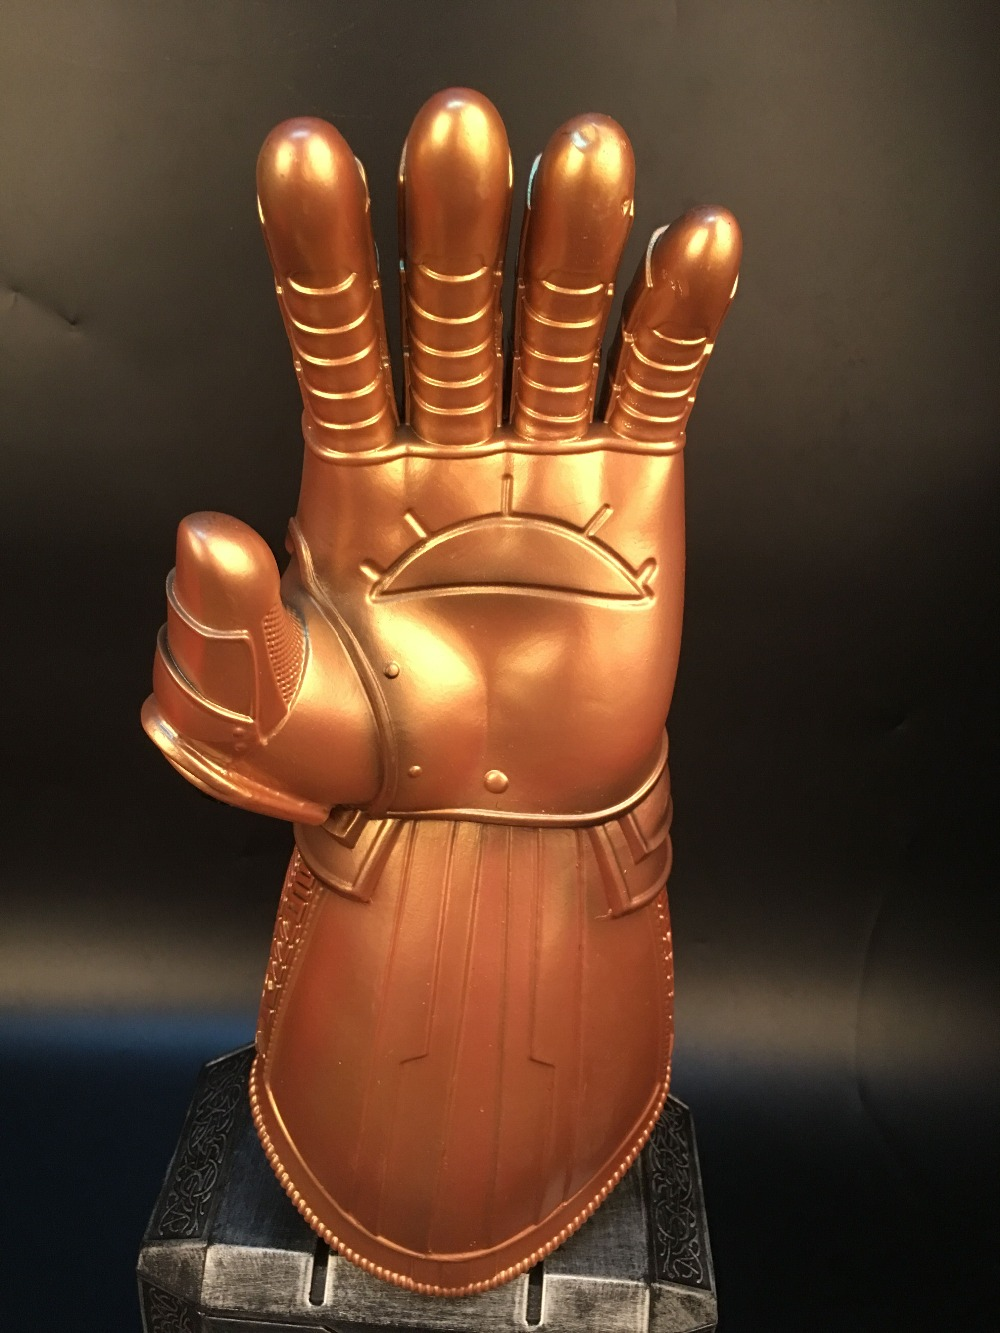 Avengers Infinity War Infinity Gauntlet LED Light Thanos Gloves Cosplay Prop AM